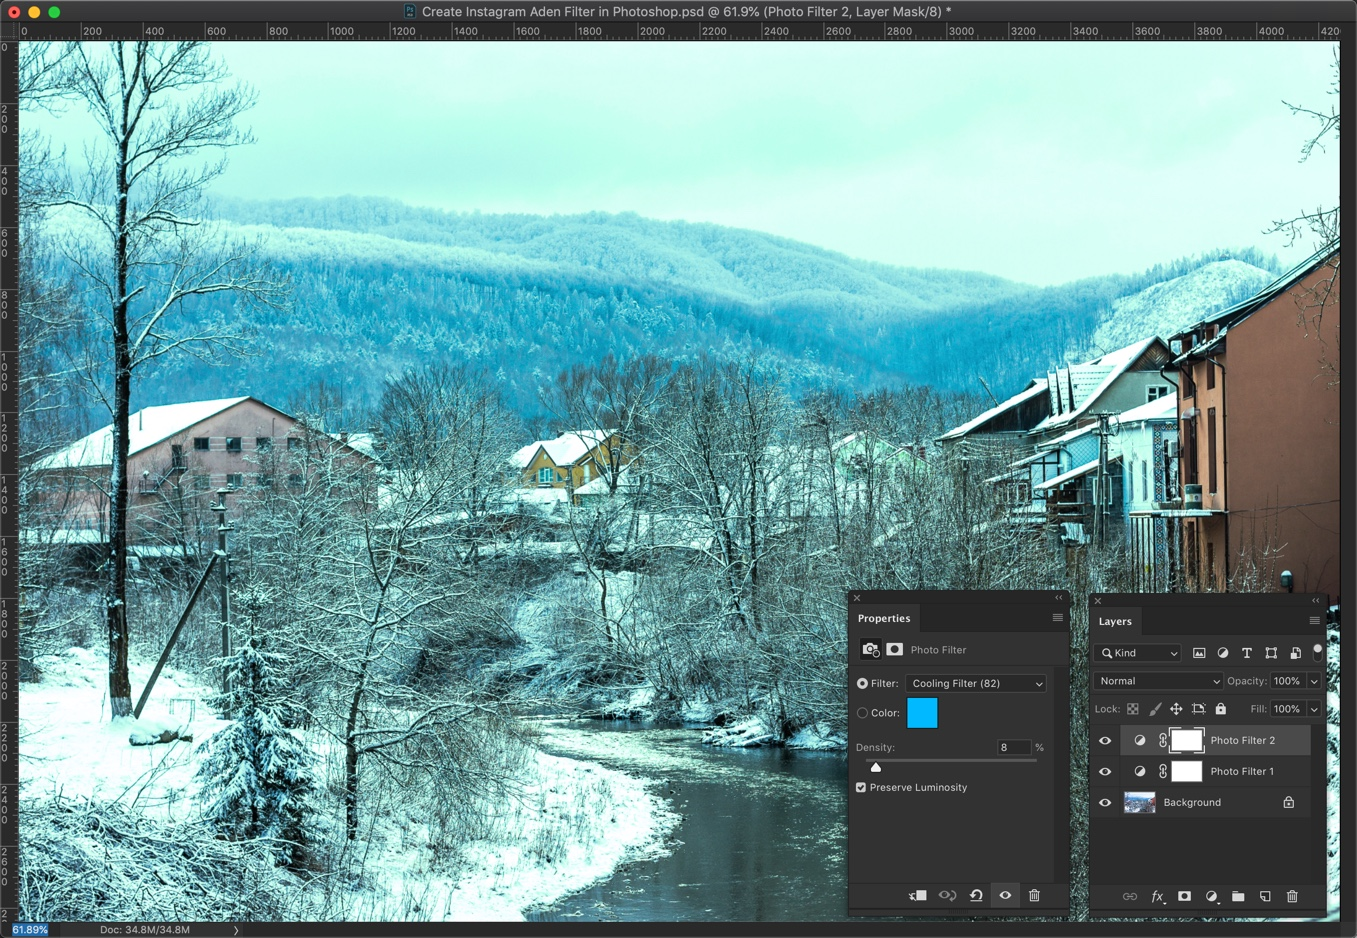 4 - [Action Included] Create Instagram Aden Filter in Photoshop